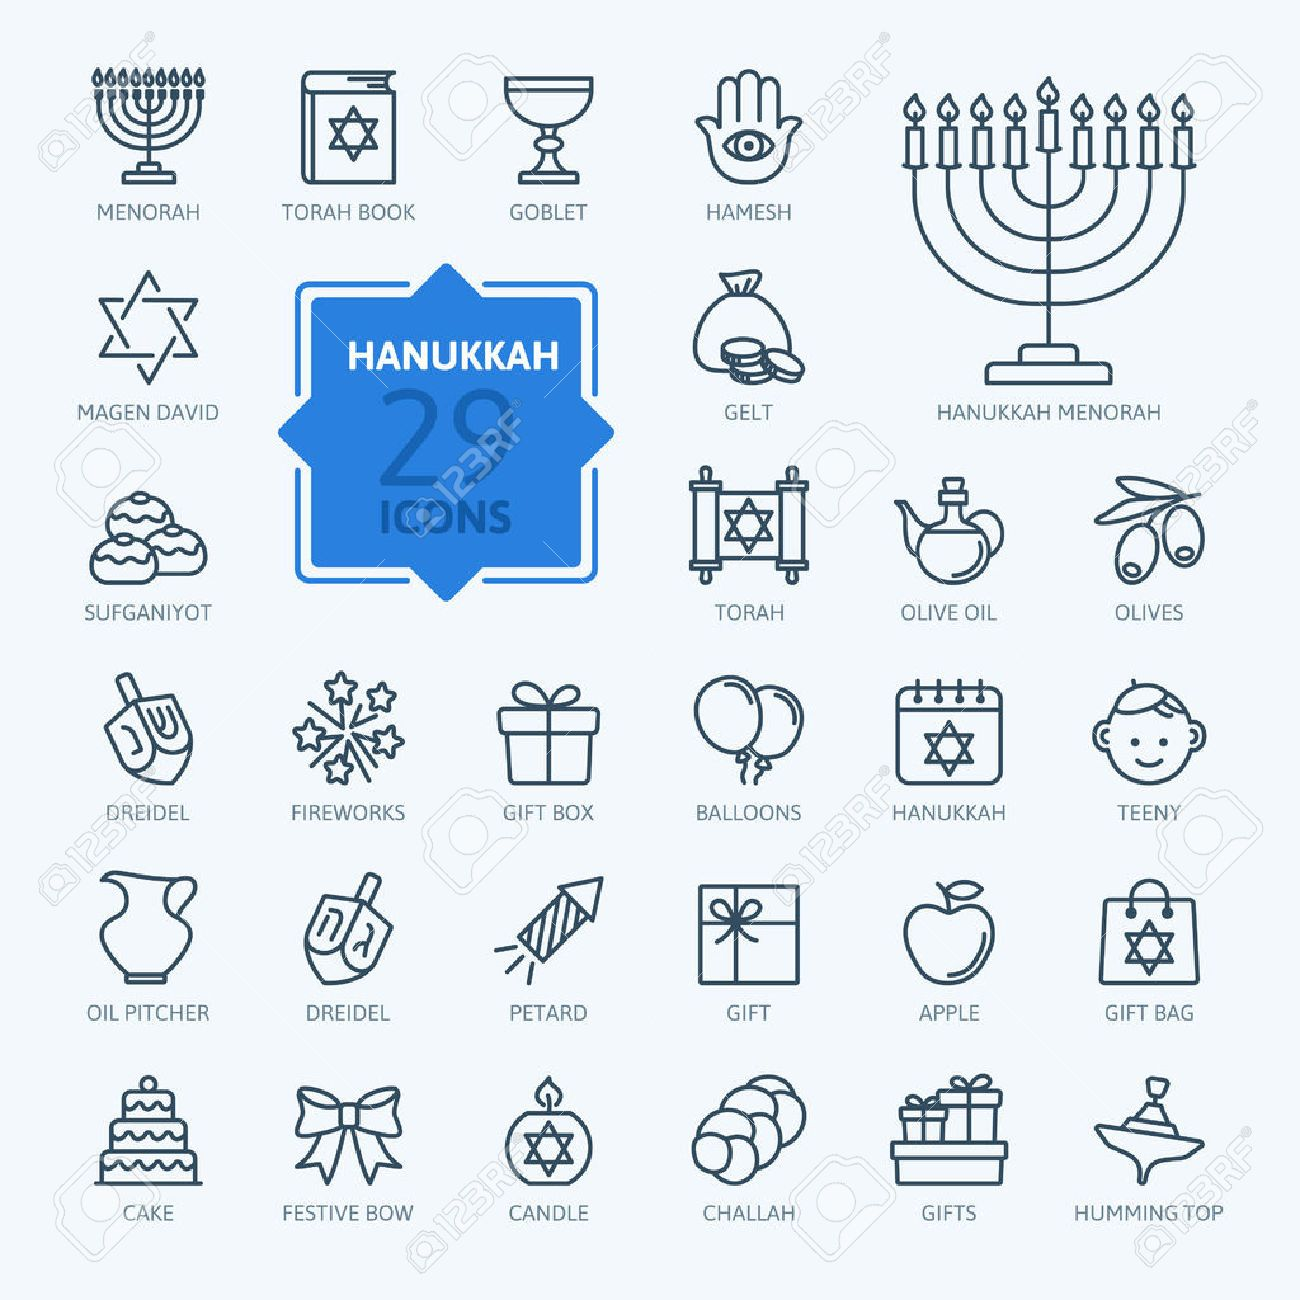 Symbols of hannukah images symbol and sign ideas 52871107 outline icon collection symbols of hanukkah stock vector outline icon collection symbols of hanukkah buy biocorpaavc